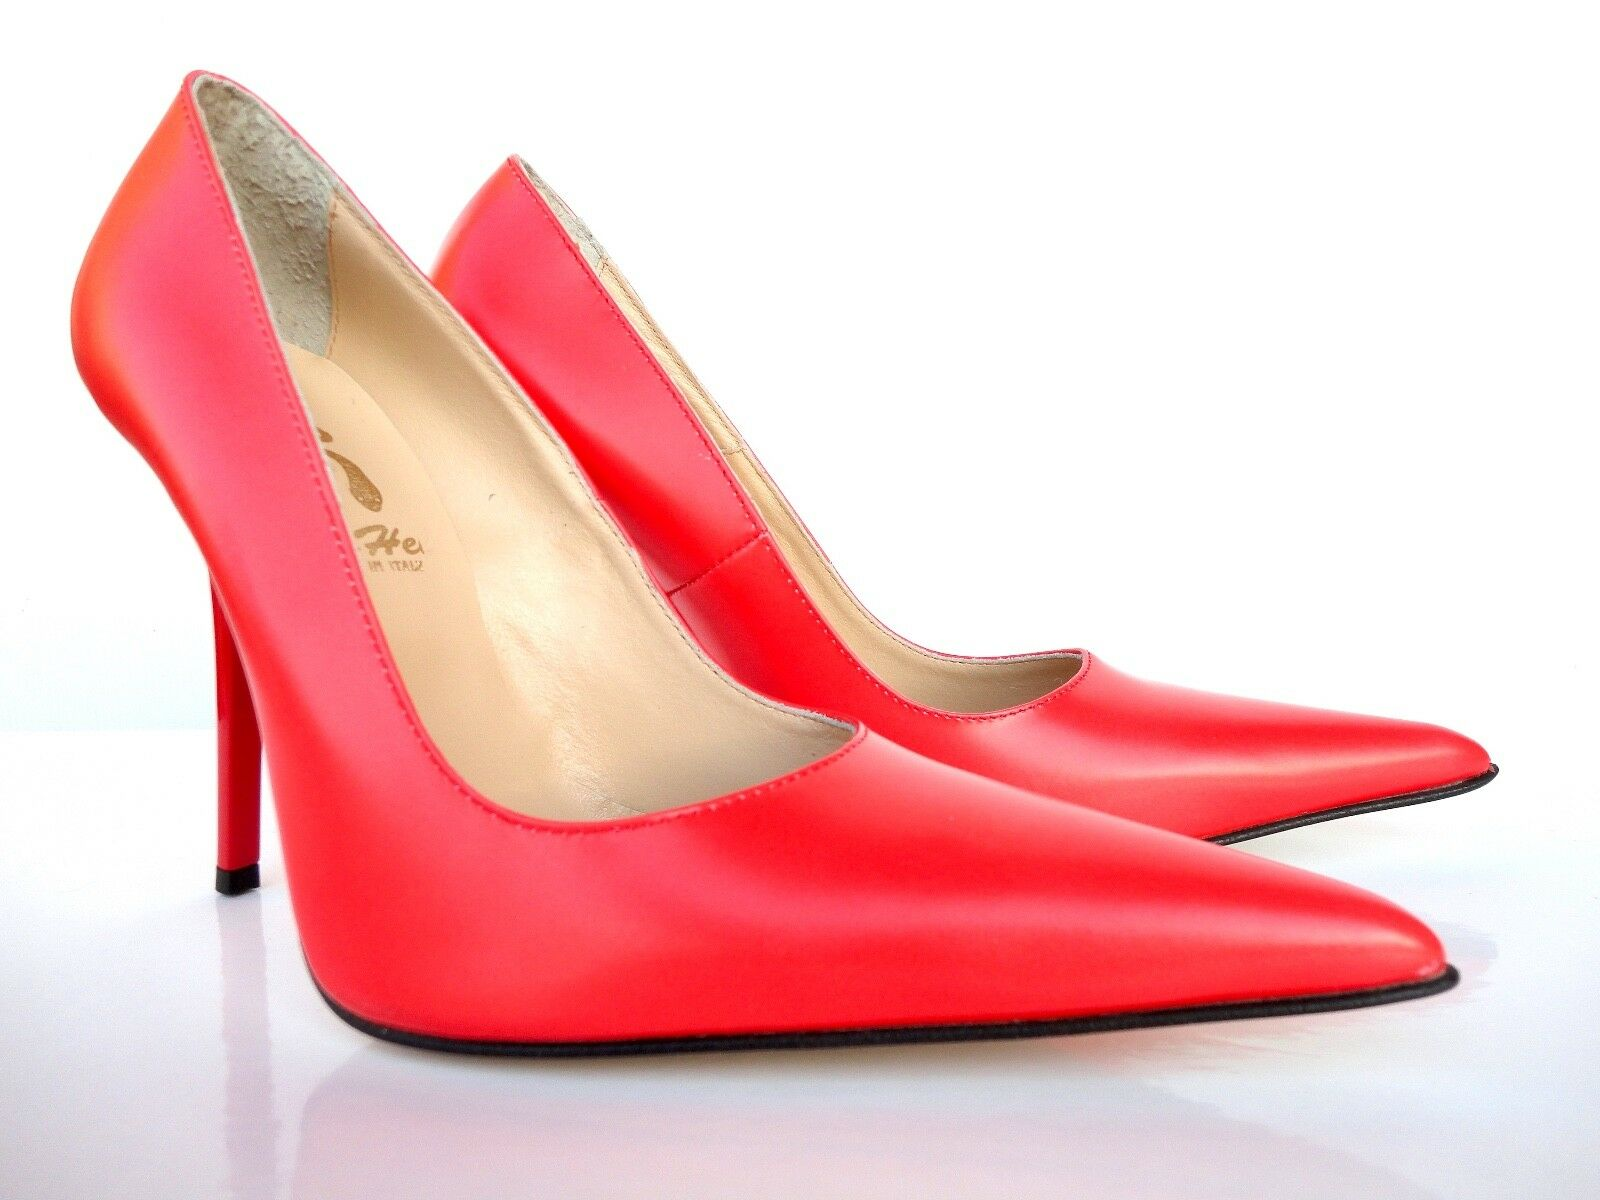 GIOHEL ITALY HIGH HEELS POINTY TOE PUMPS PUMPS PUMPS SCHUHE LEATHER DECOLTE rot ROT rot 37 ced3a4